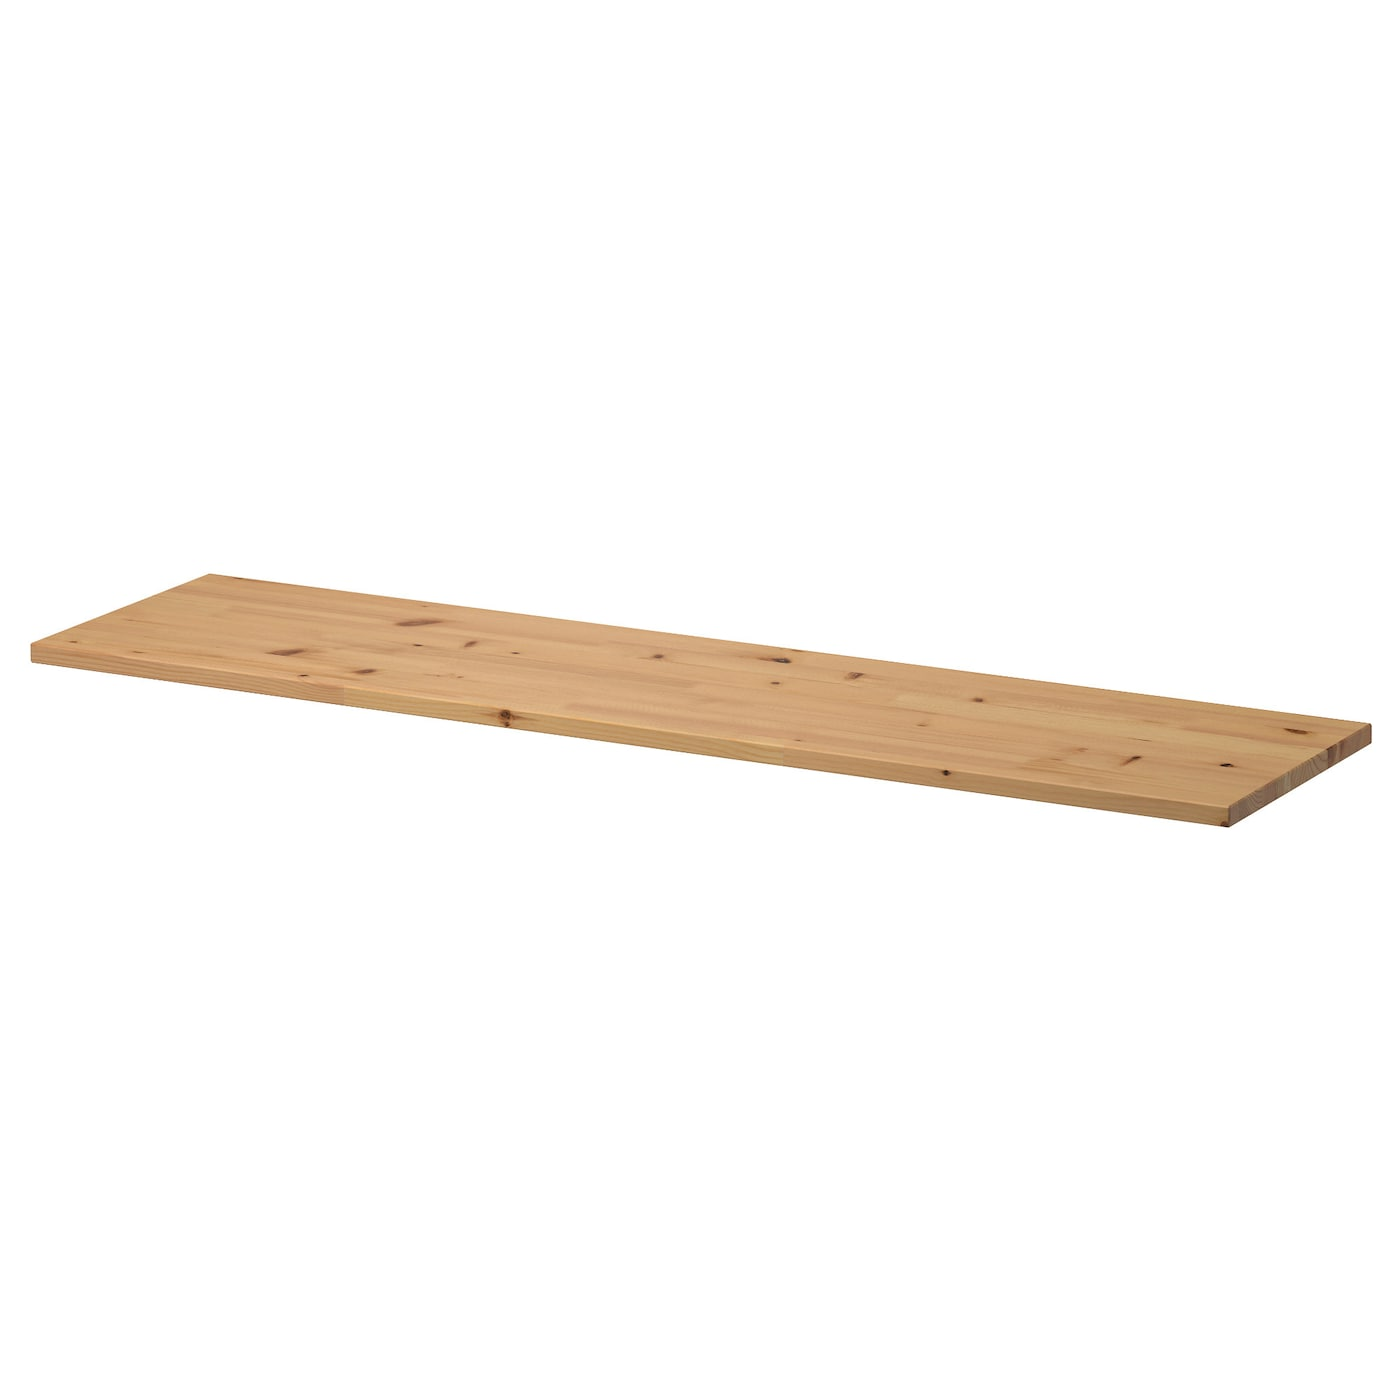 IKEA EKBY HEMNES shelf Solid wood is a durable natural material.